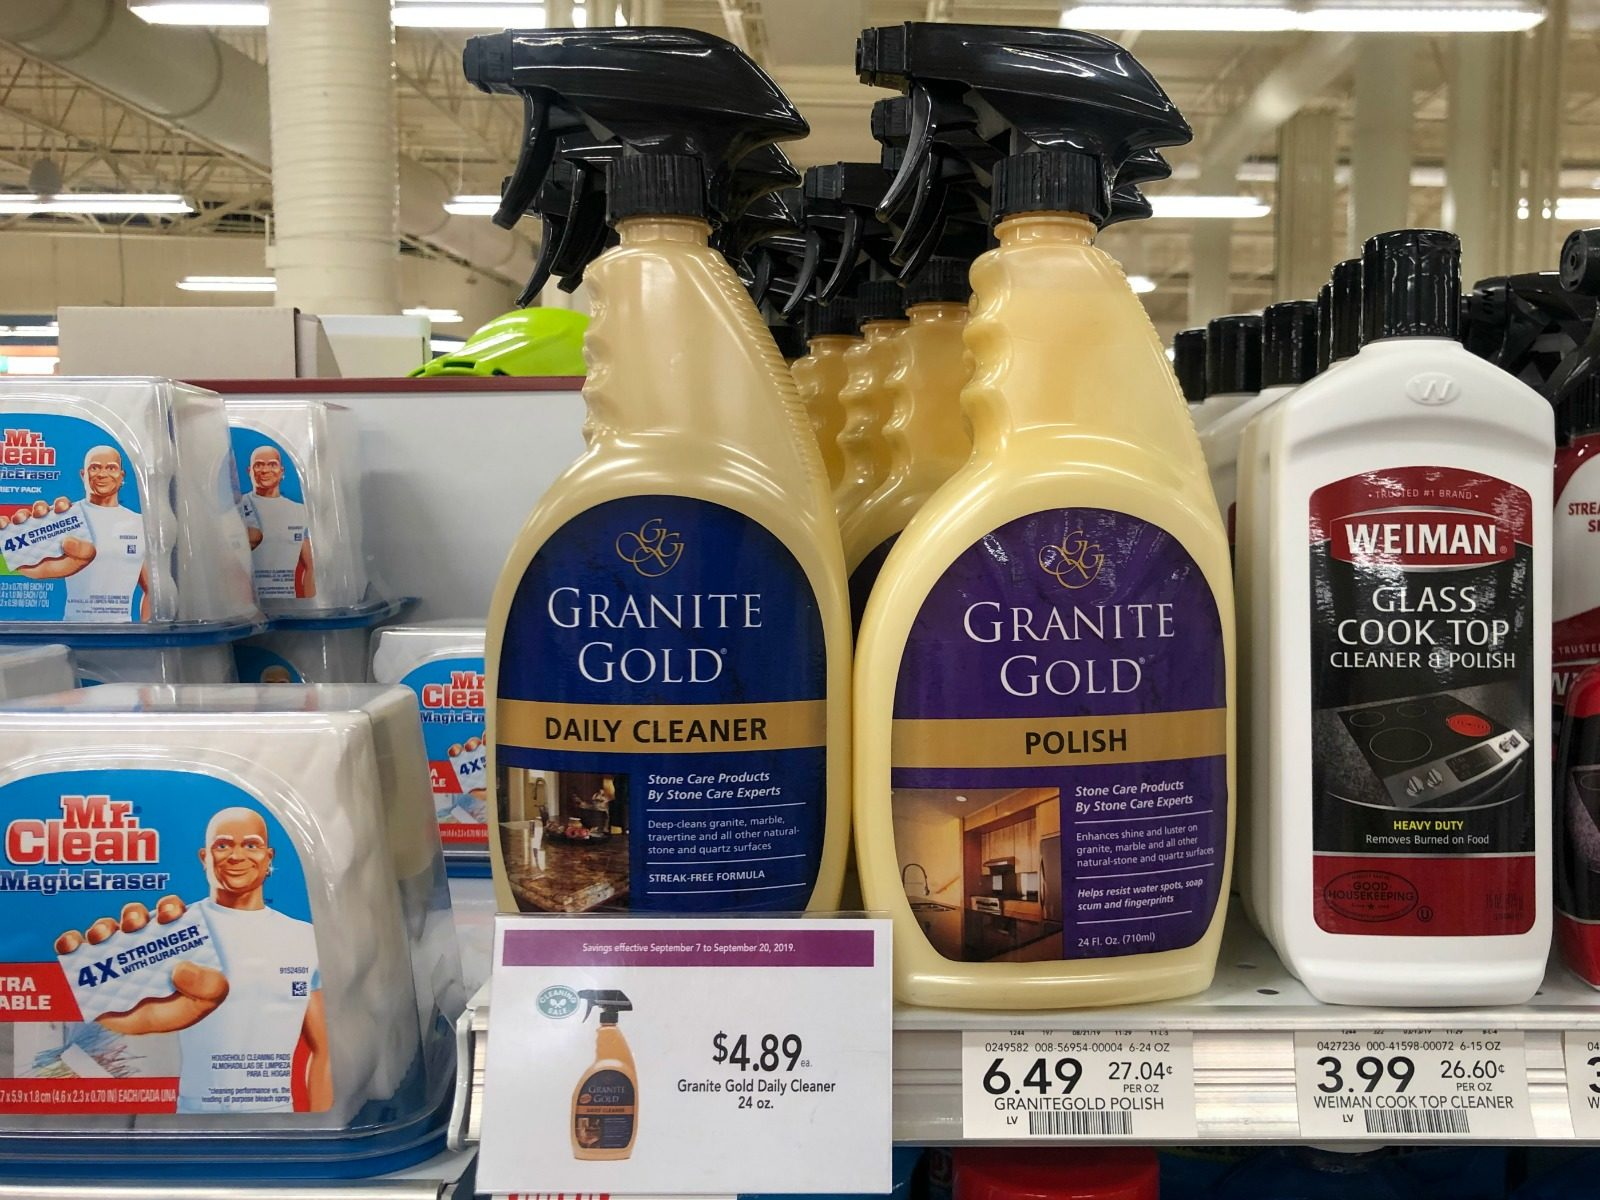 Still Time To Save On Granite Gold Daily Cleaner At Your Local Publix